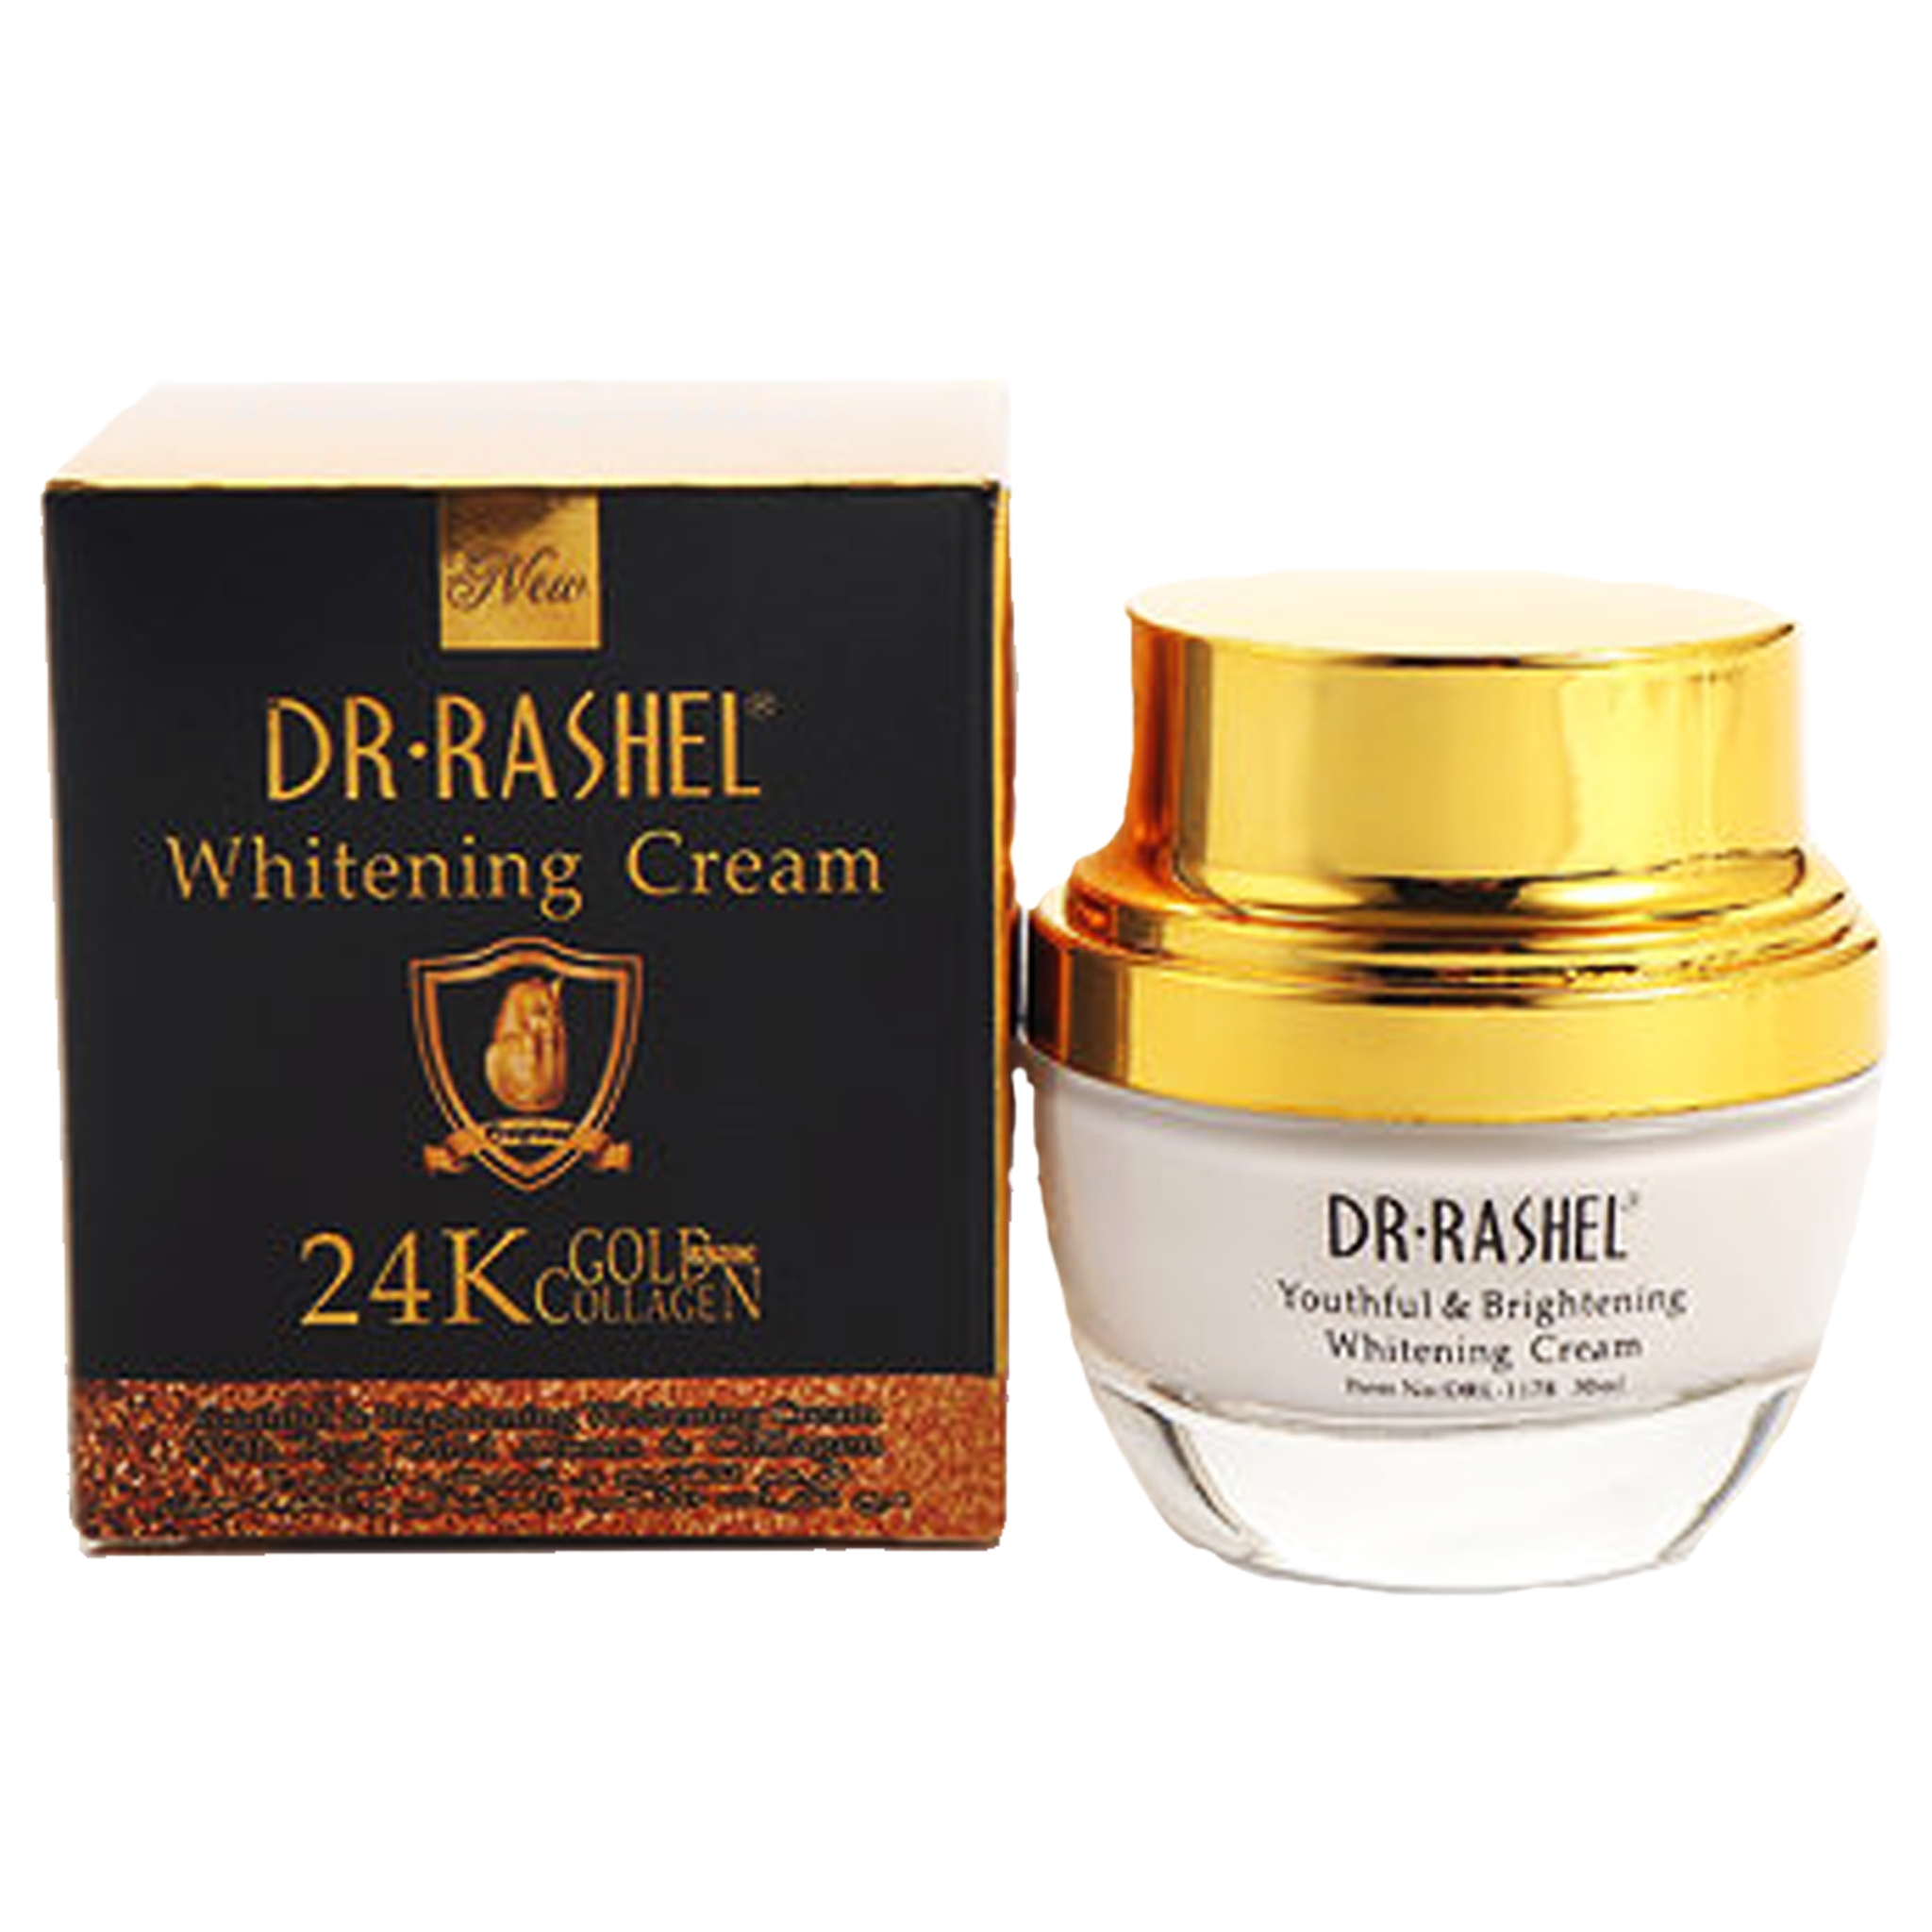 Dr Rashel 24K Whitening Day Cream.30g - Greatest deals